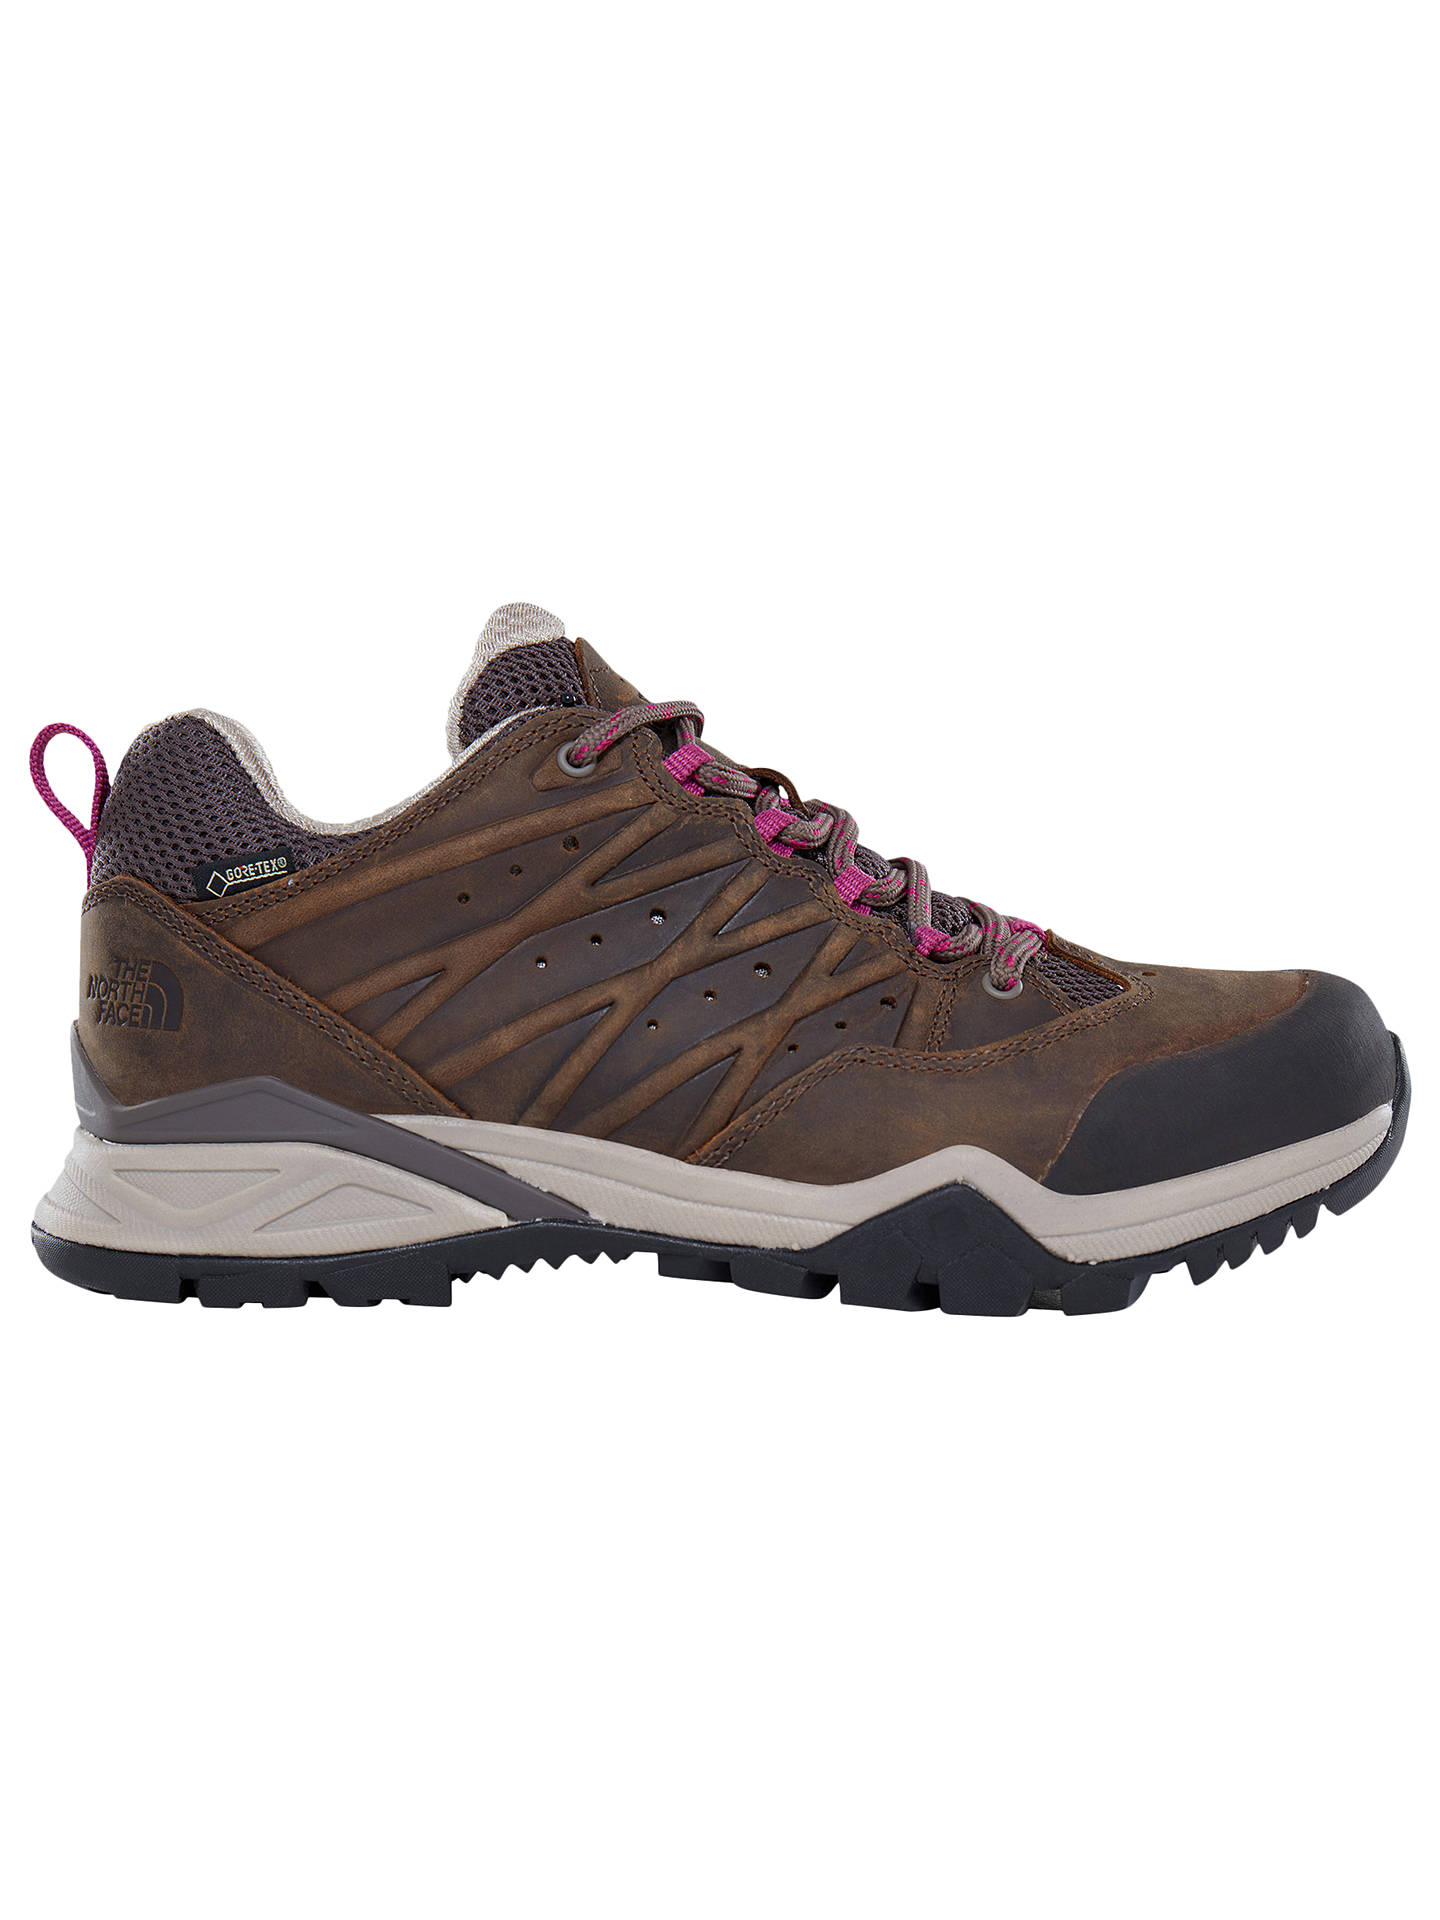 51b3f6fb0 The North Face Hedgehog Hike 2 GORE-TEX Women's Hiking Boots, Brown